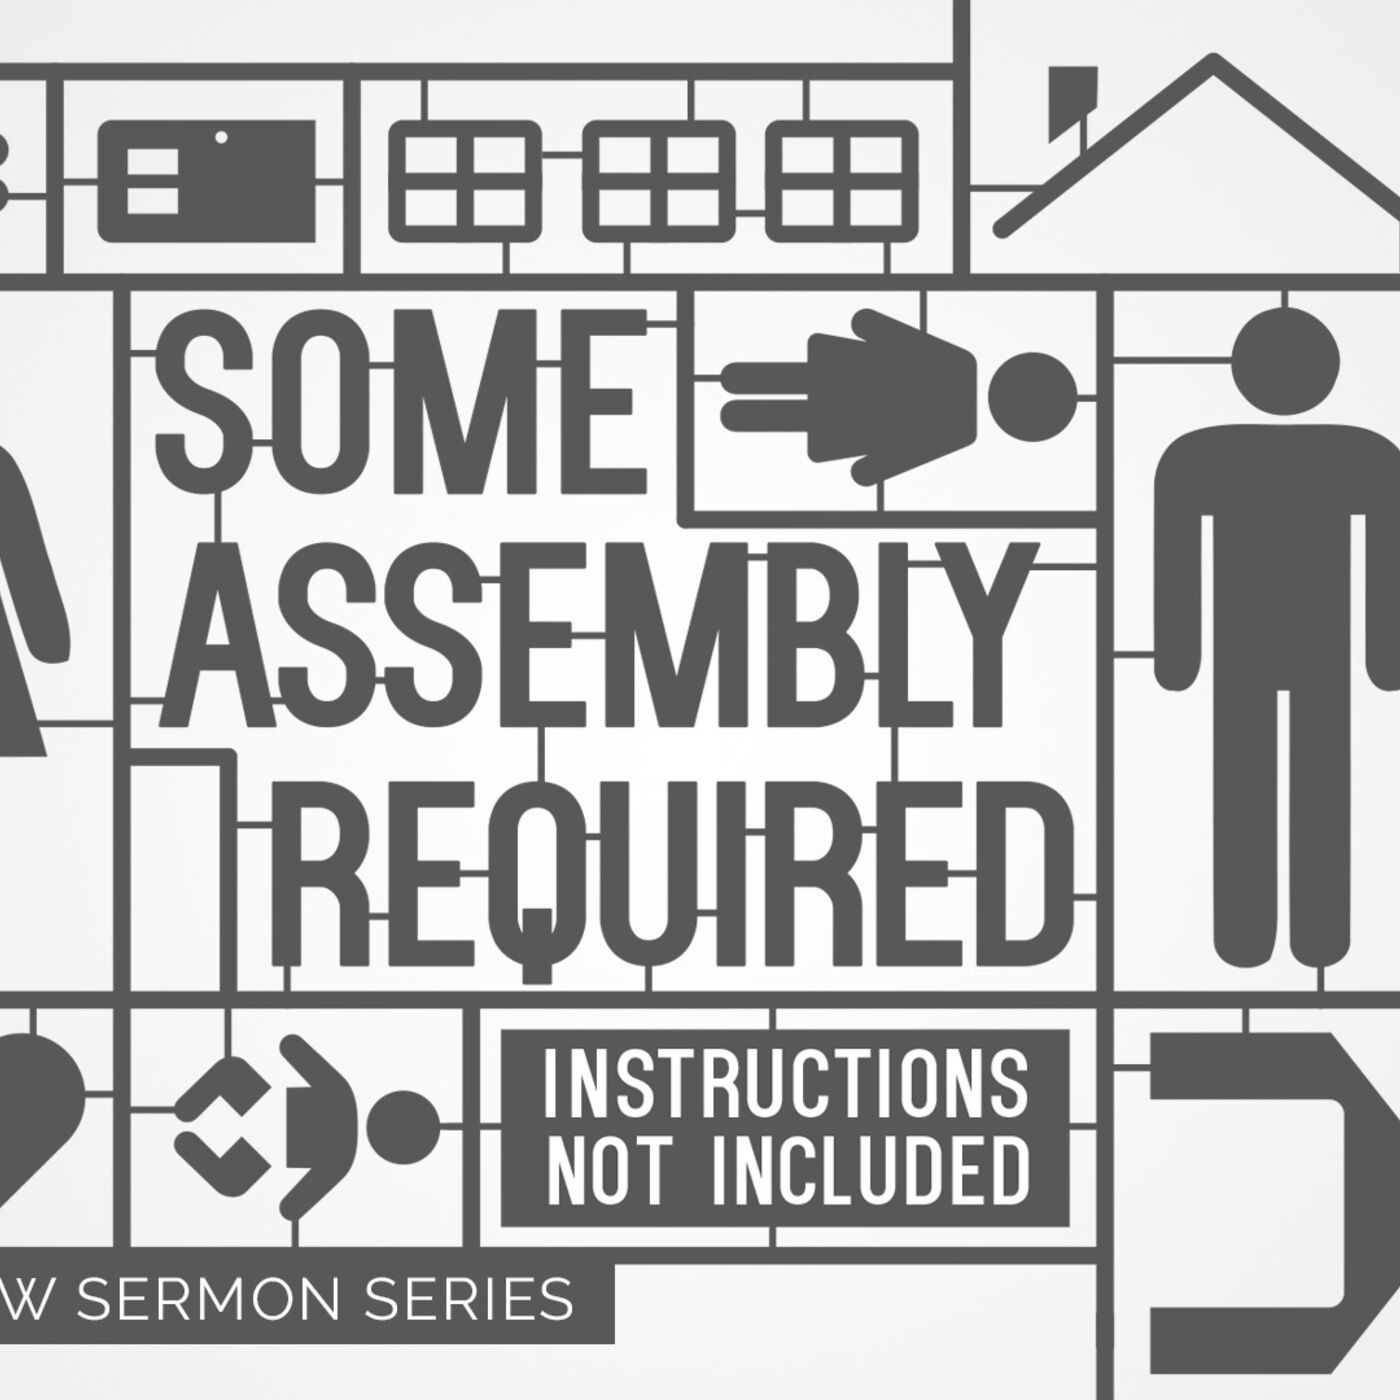 Some Assembly Required Week 3